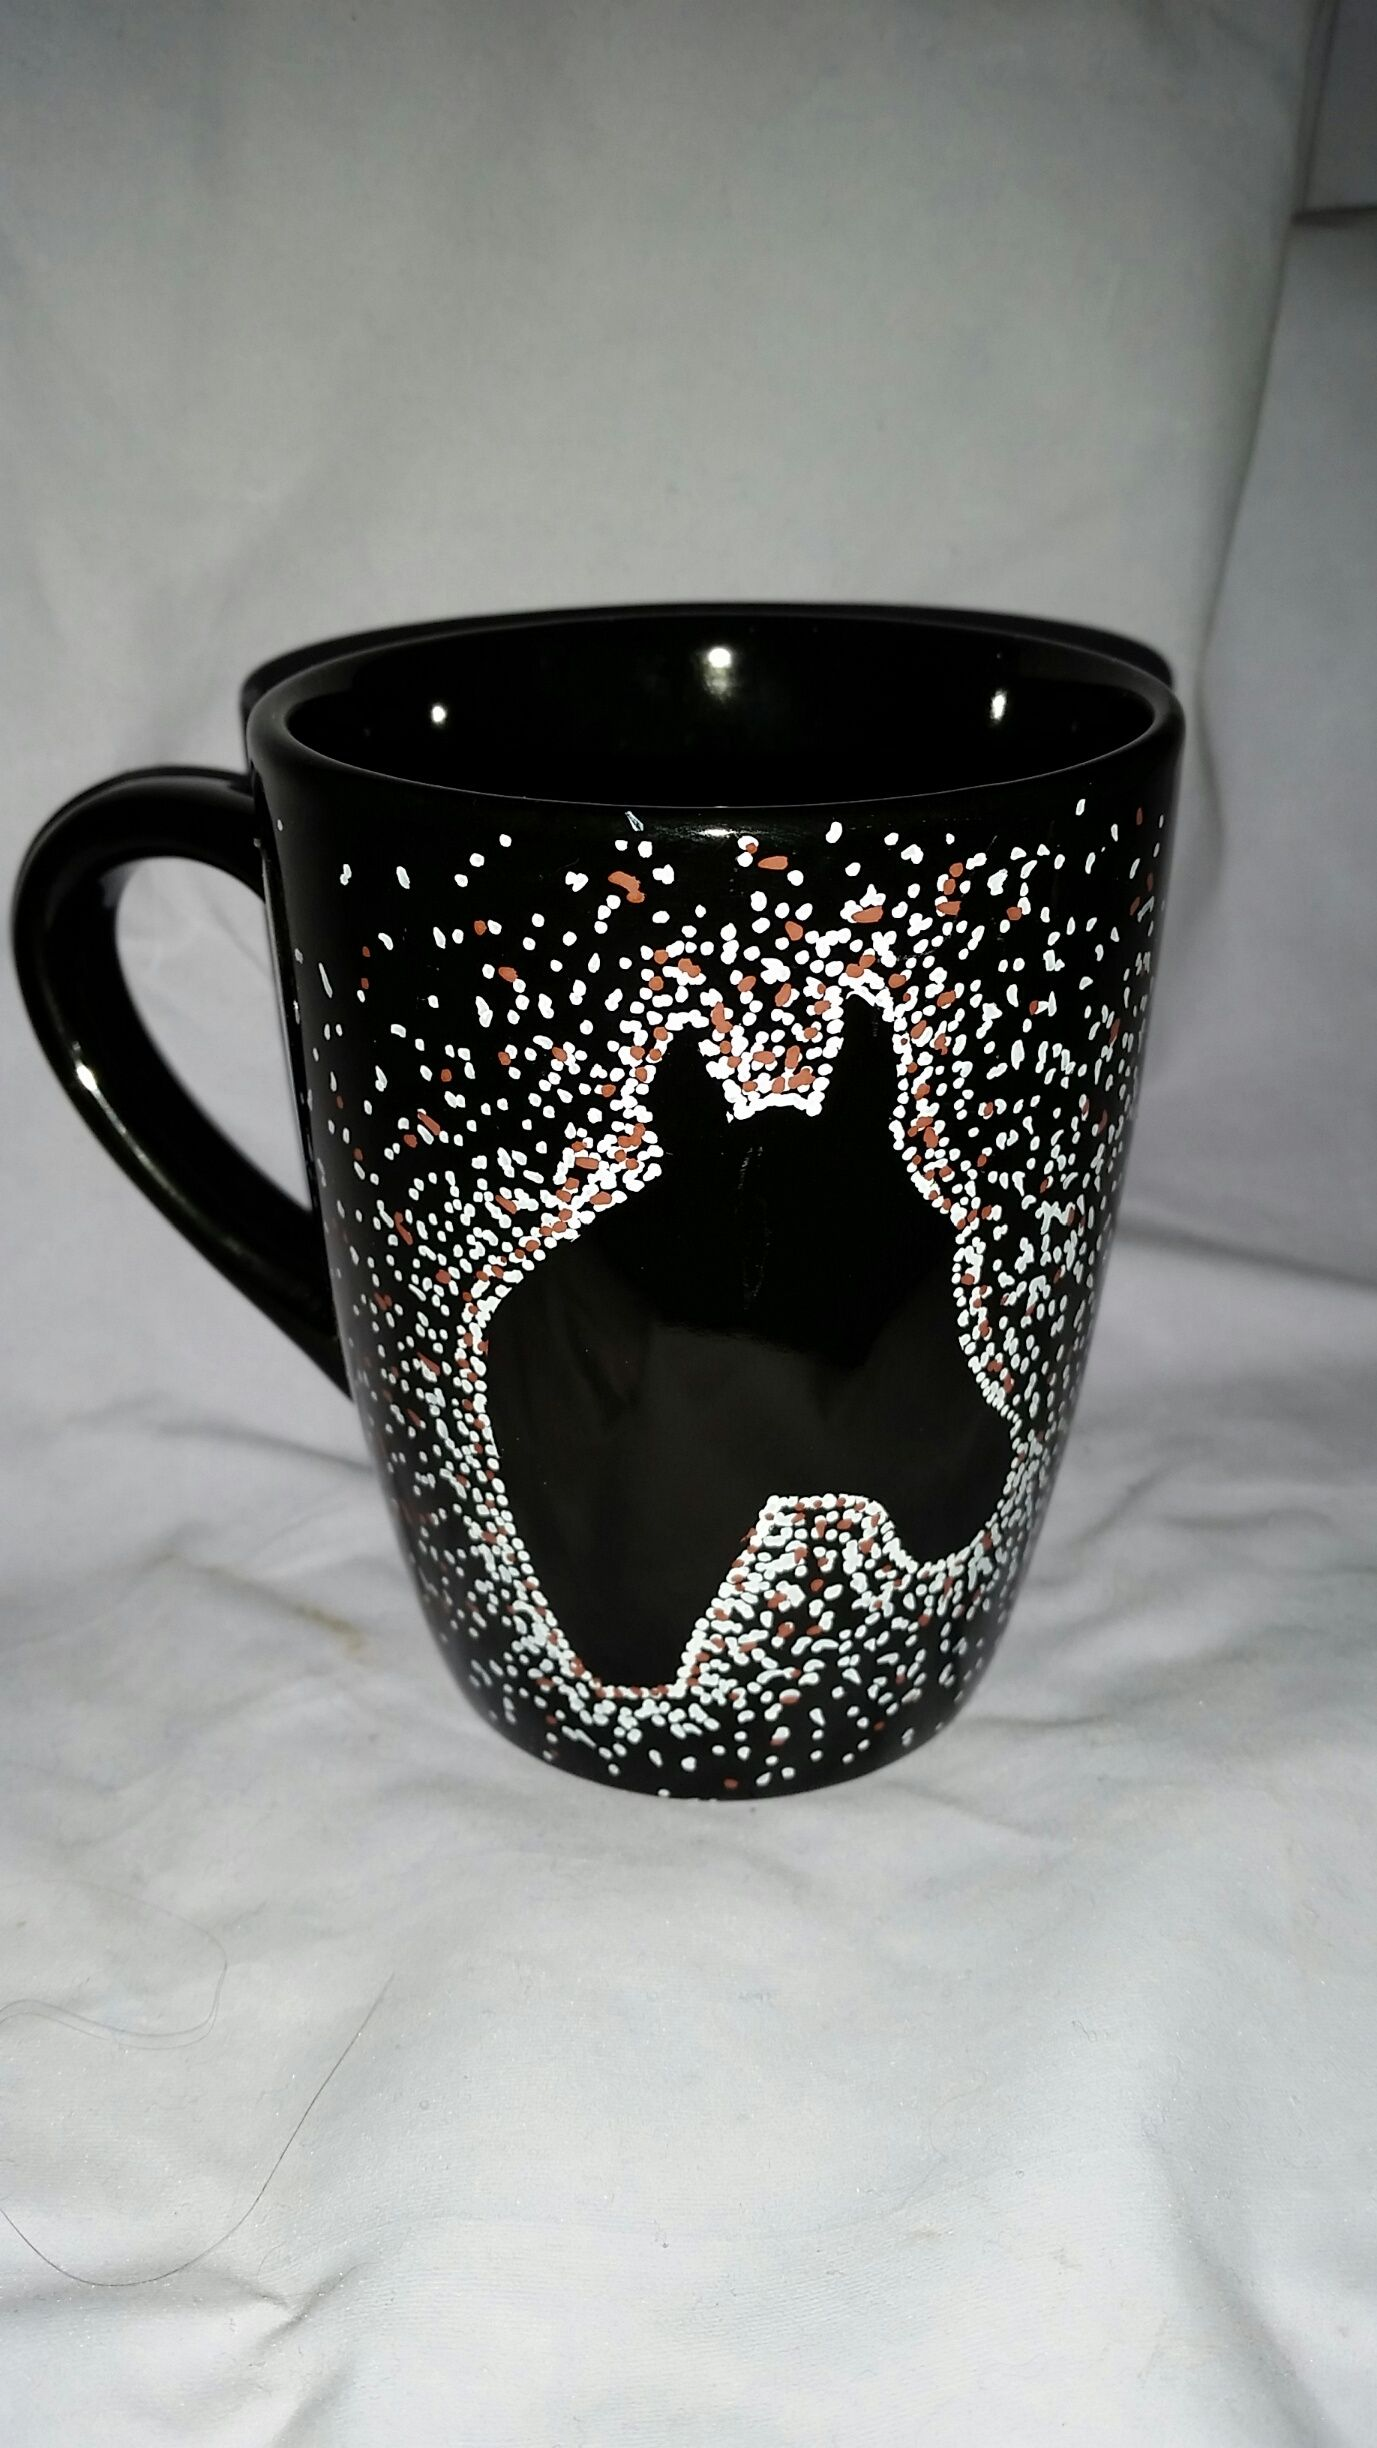 Hand Painted ceramic mug with dot painted silhouette of a